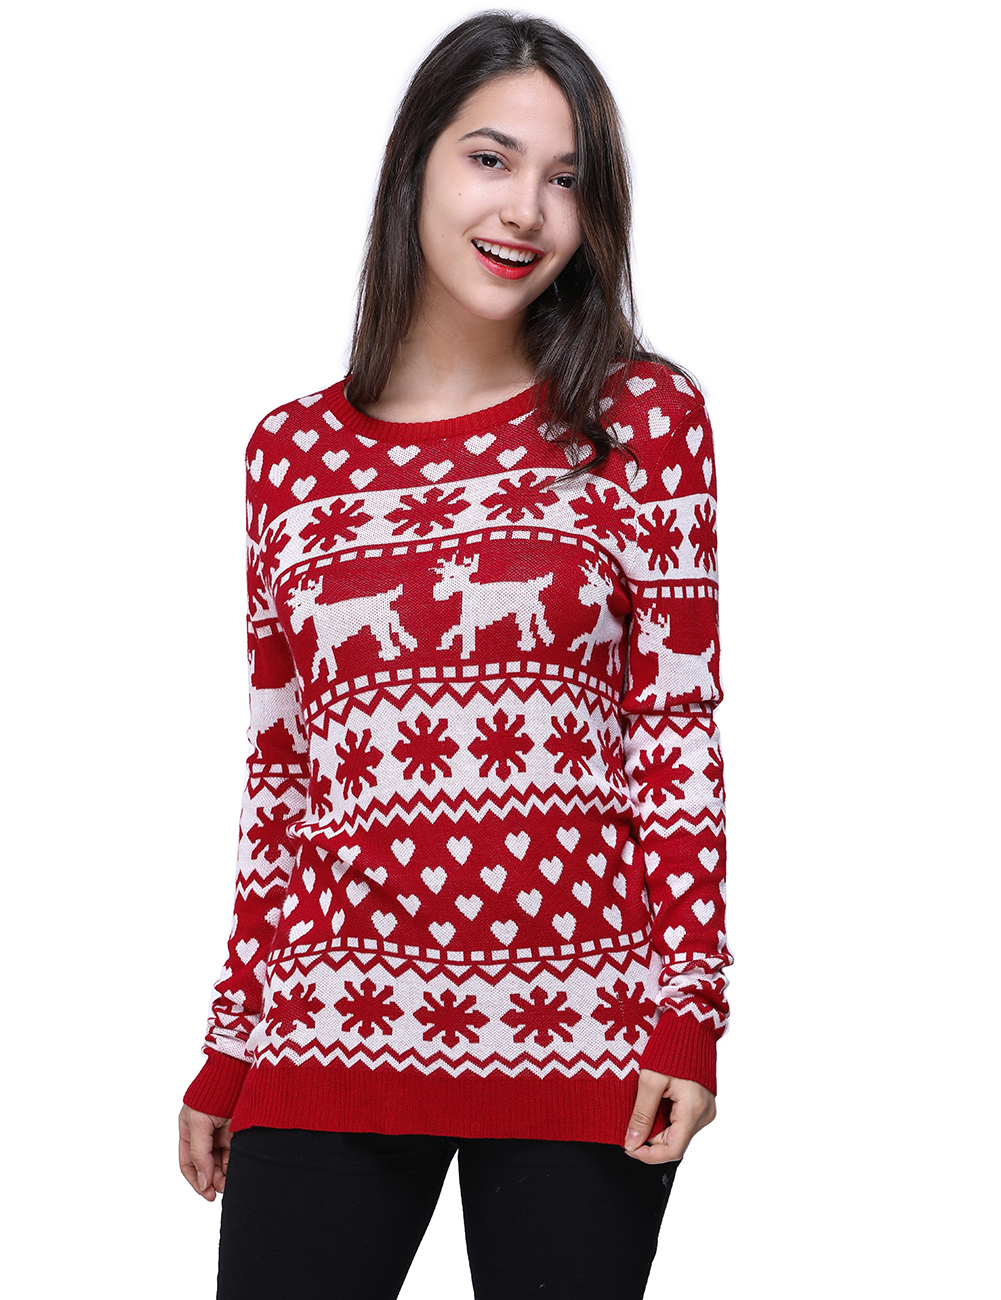 Deer Pullover Casual Long Sleeve Autumn Christmas Women Knitted Red Sweater O Neck Deer Print Slim Pullover Sweater Winter Tops